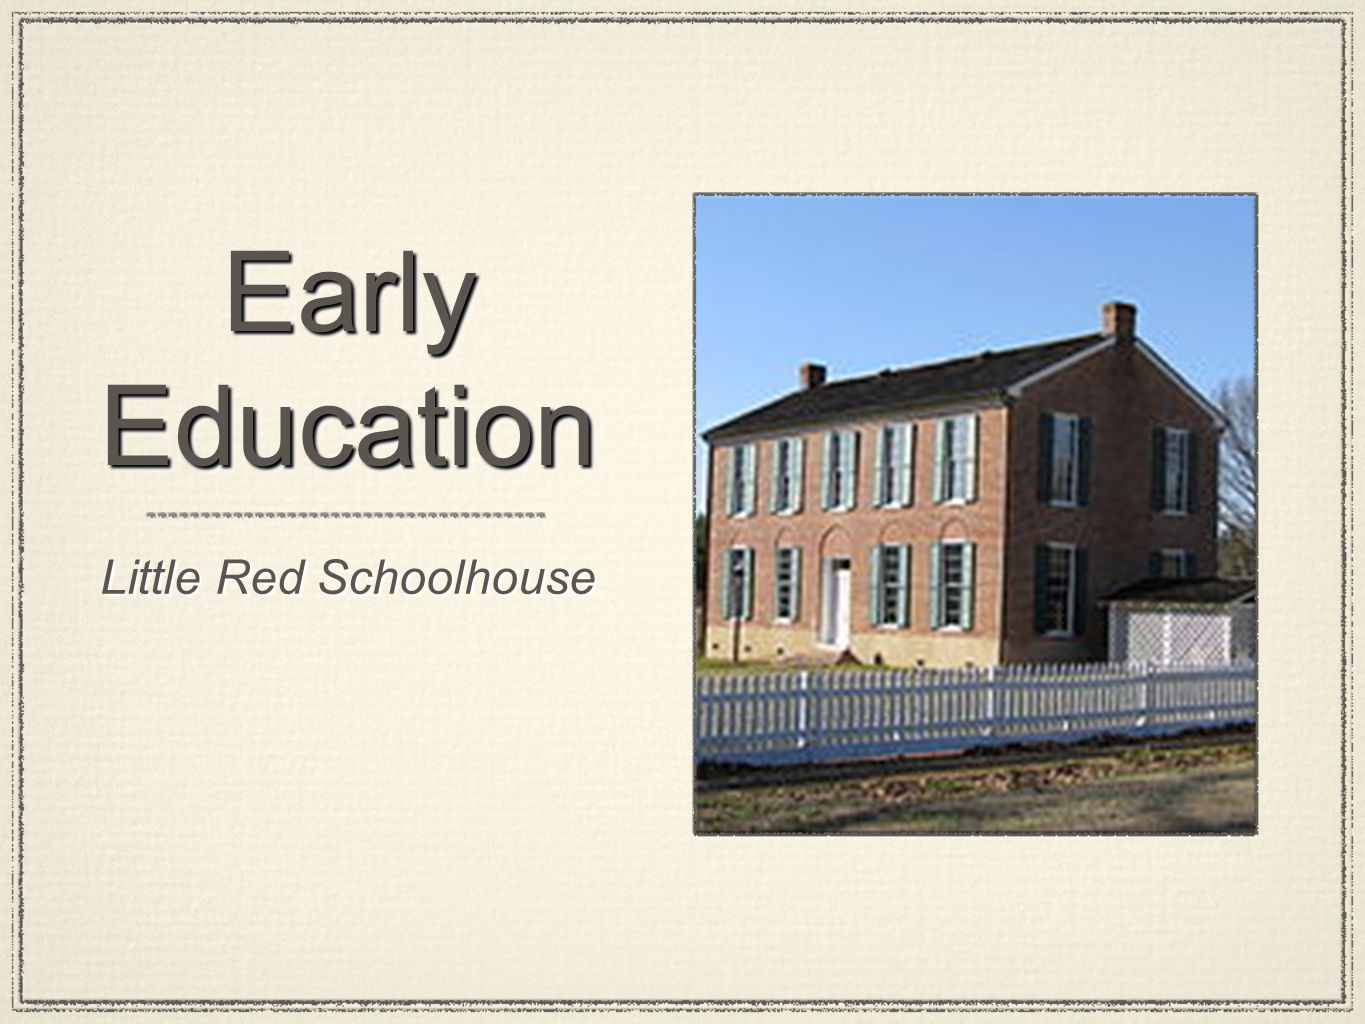 Early Education Little Red Schoolhouse